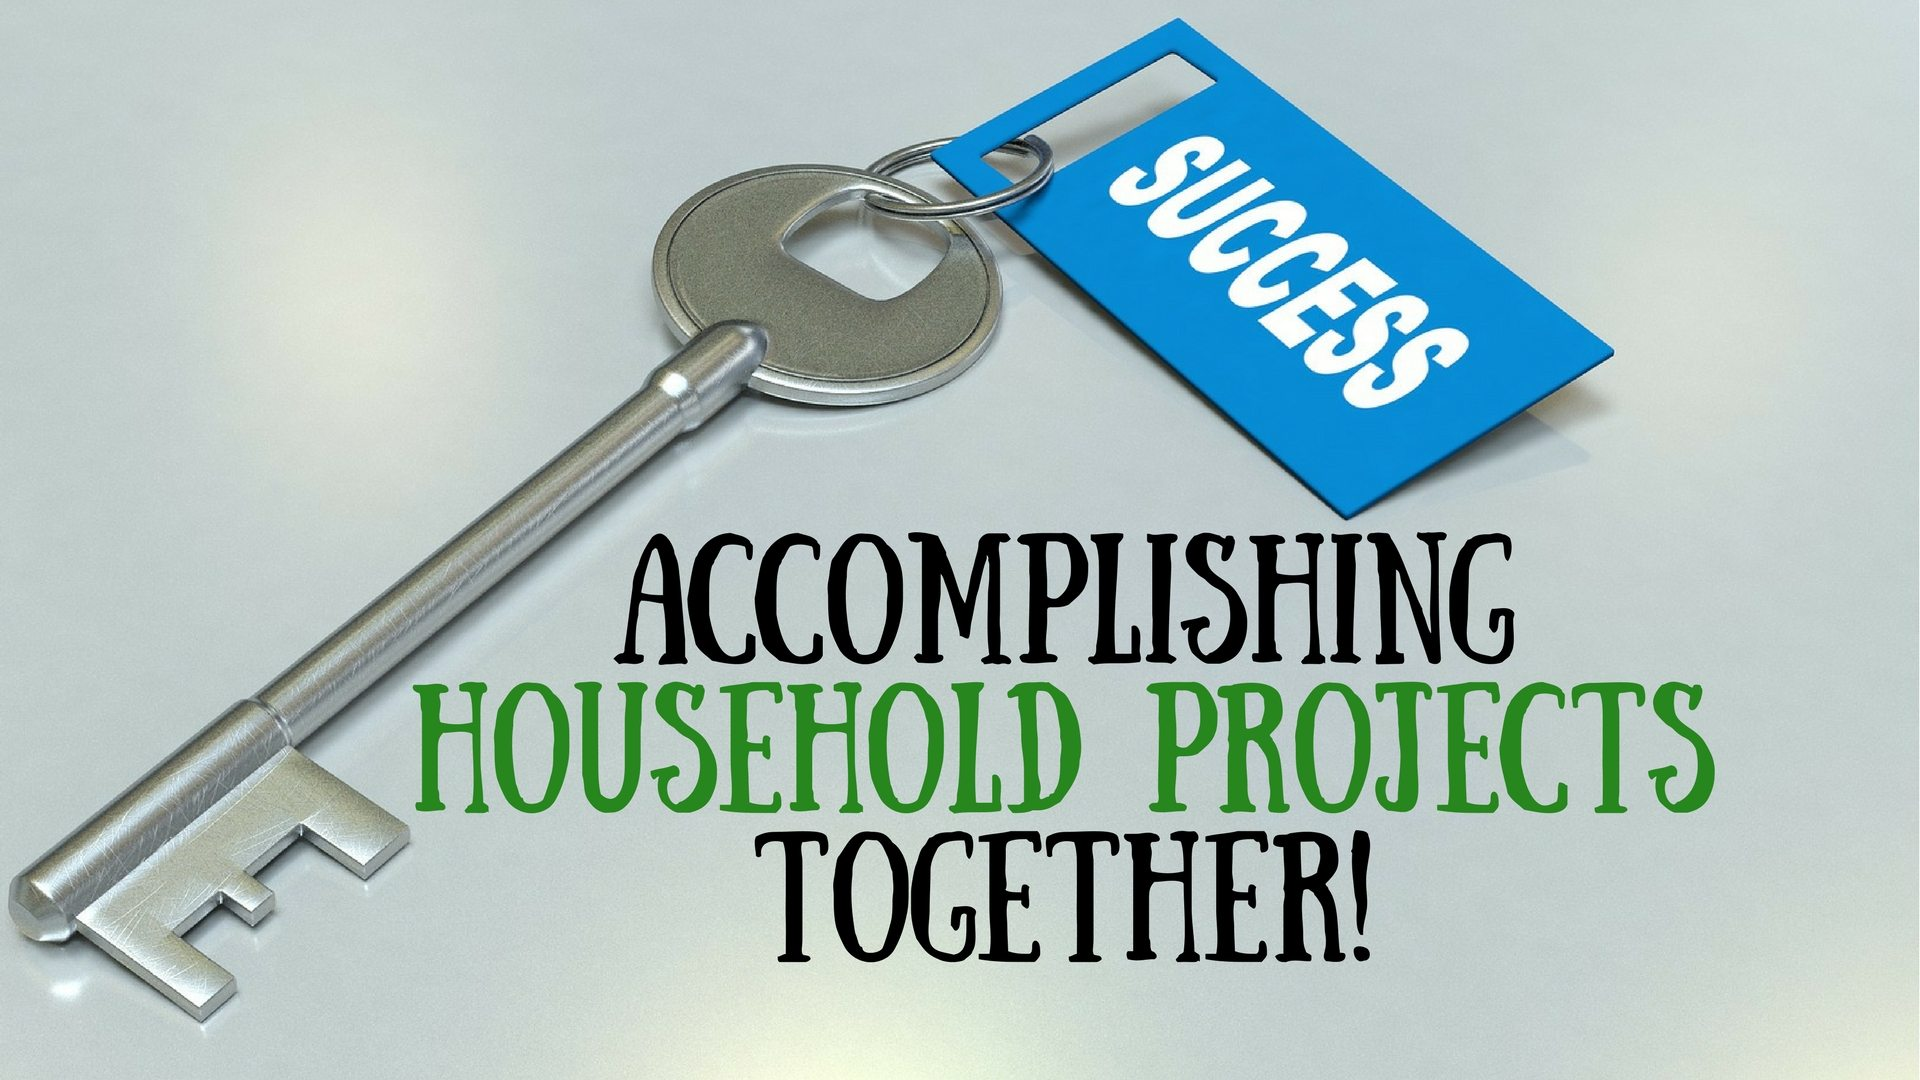 Household projects together- Pixabay - Canva